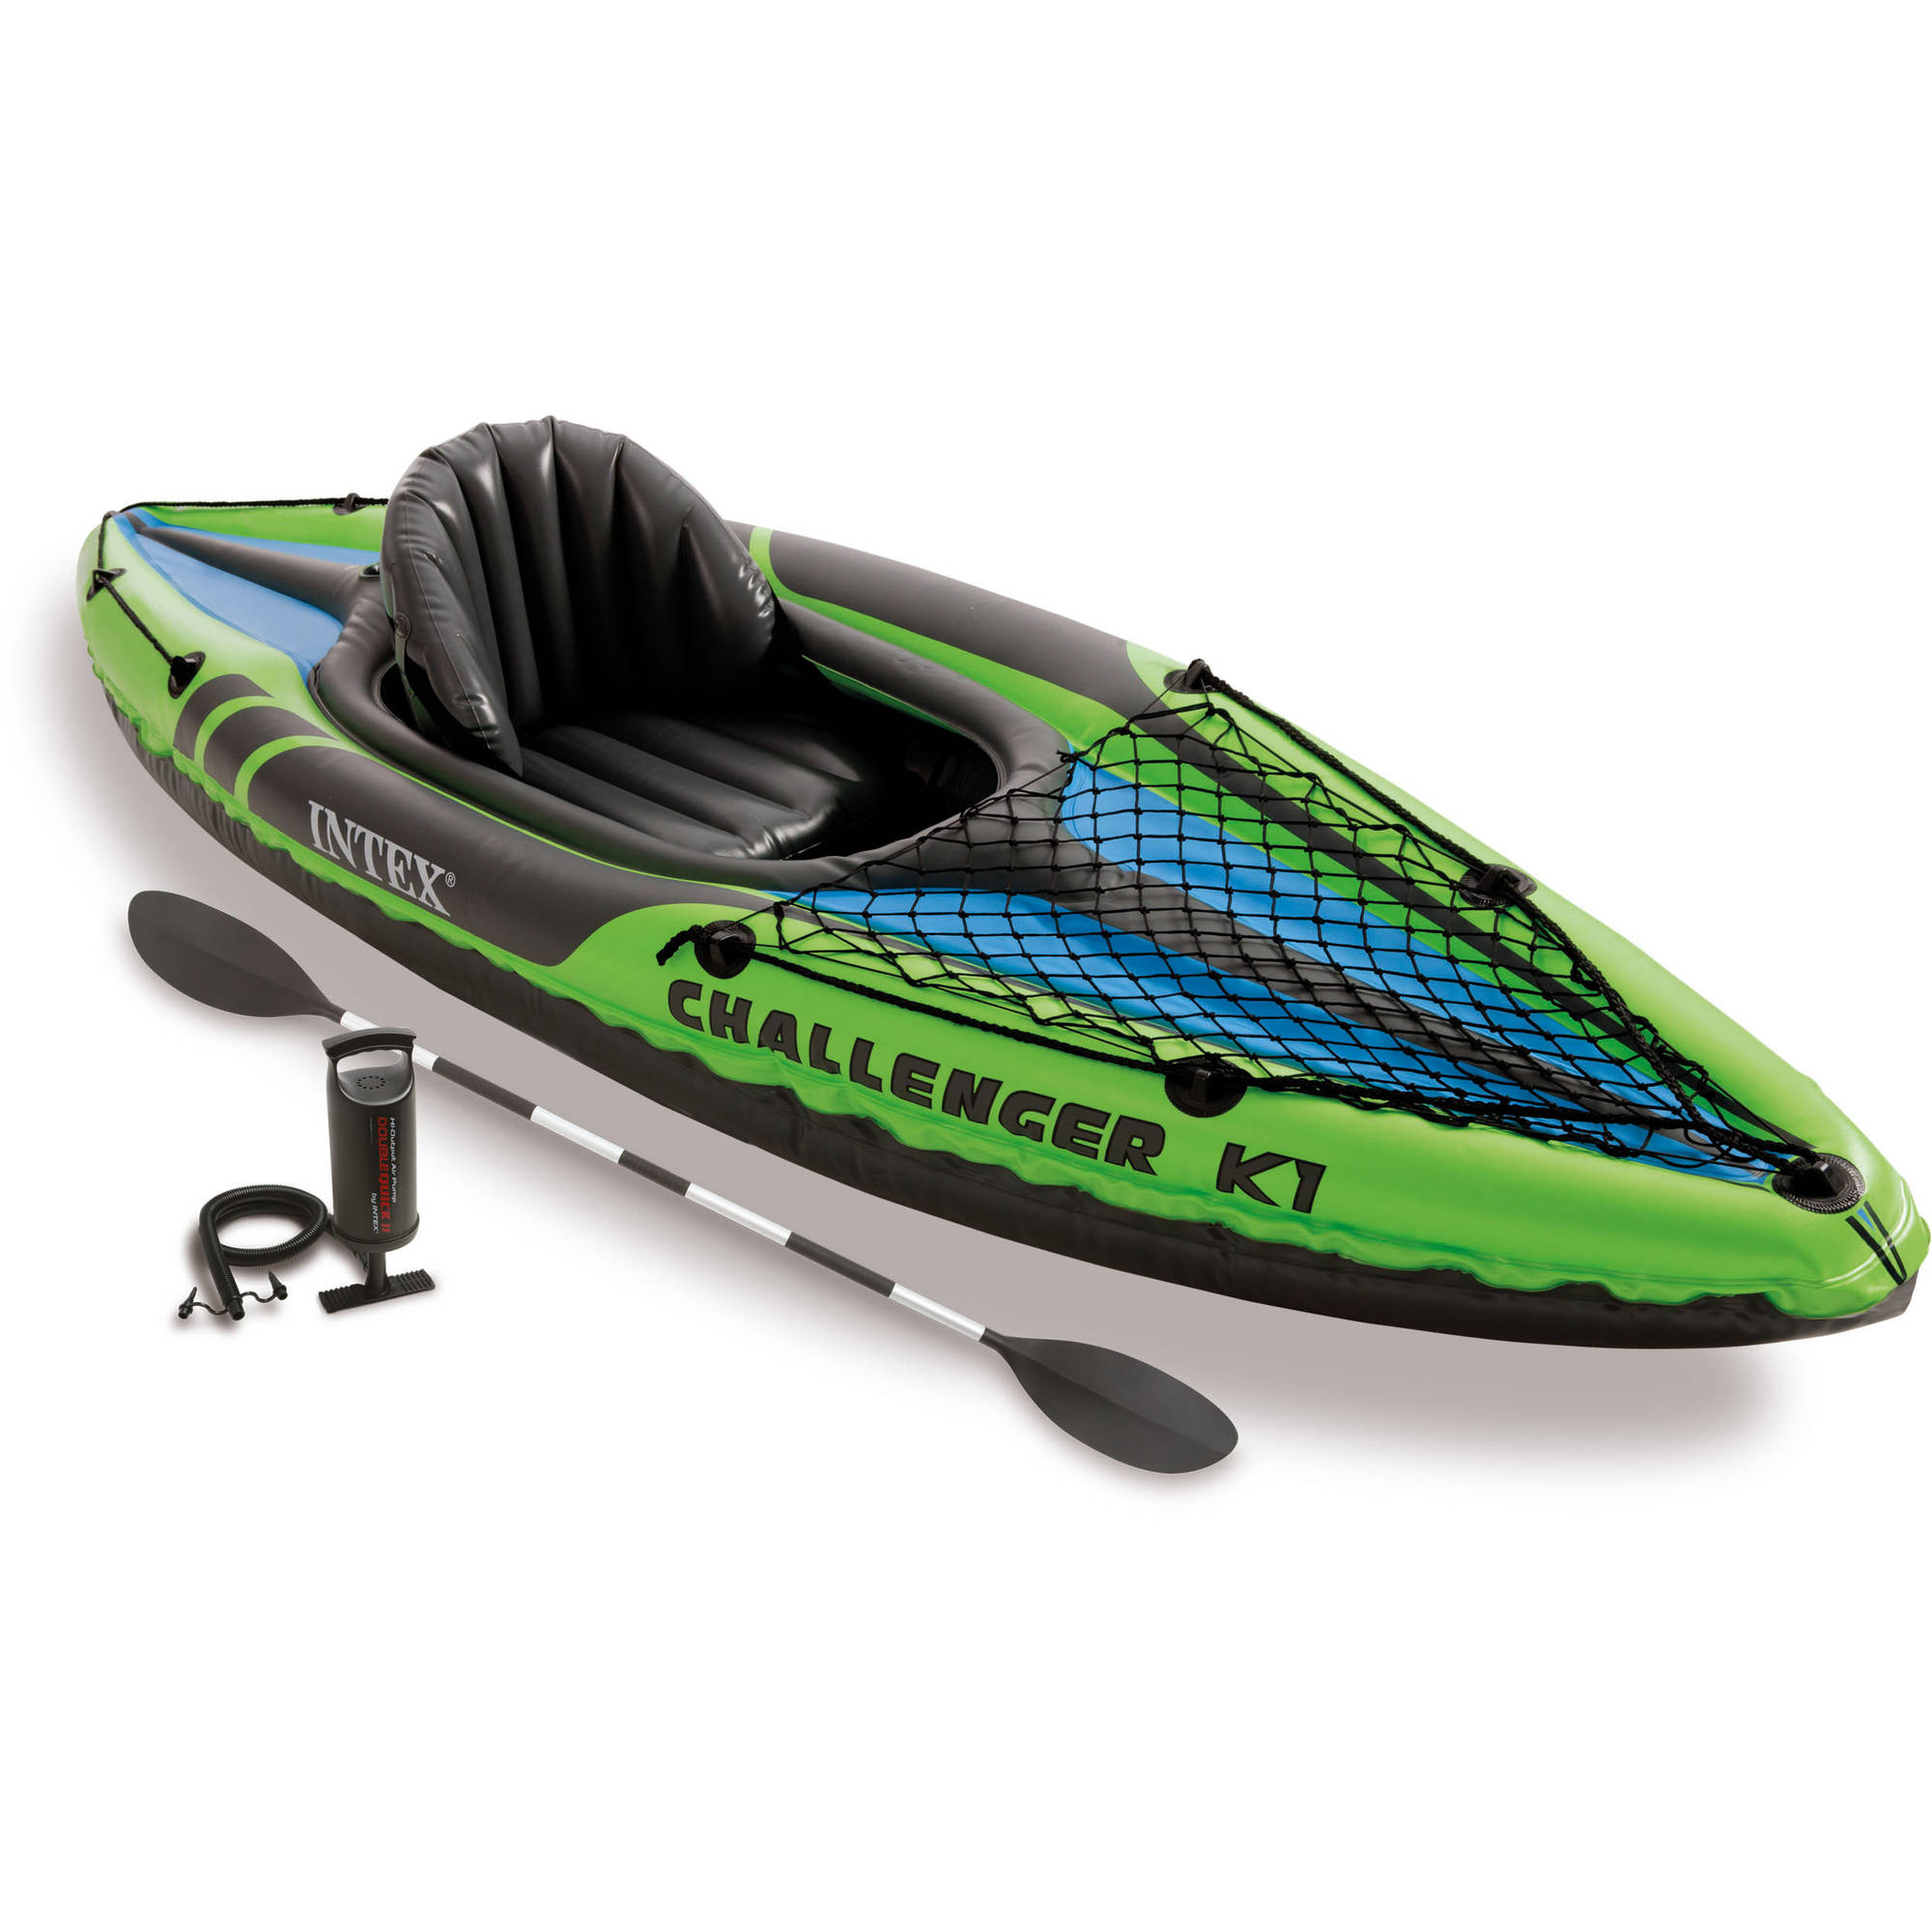 Intex Recreation Challenger K1 Lake Kayak